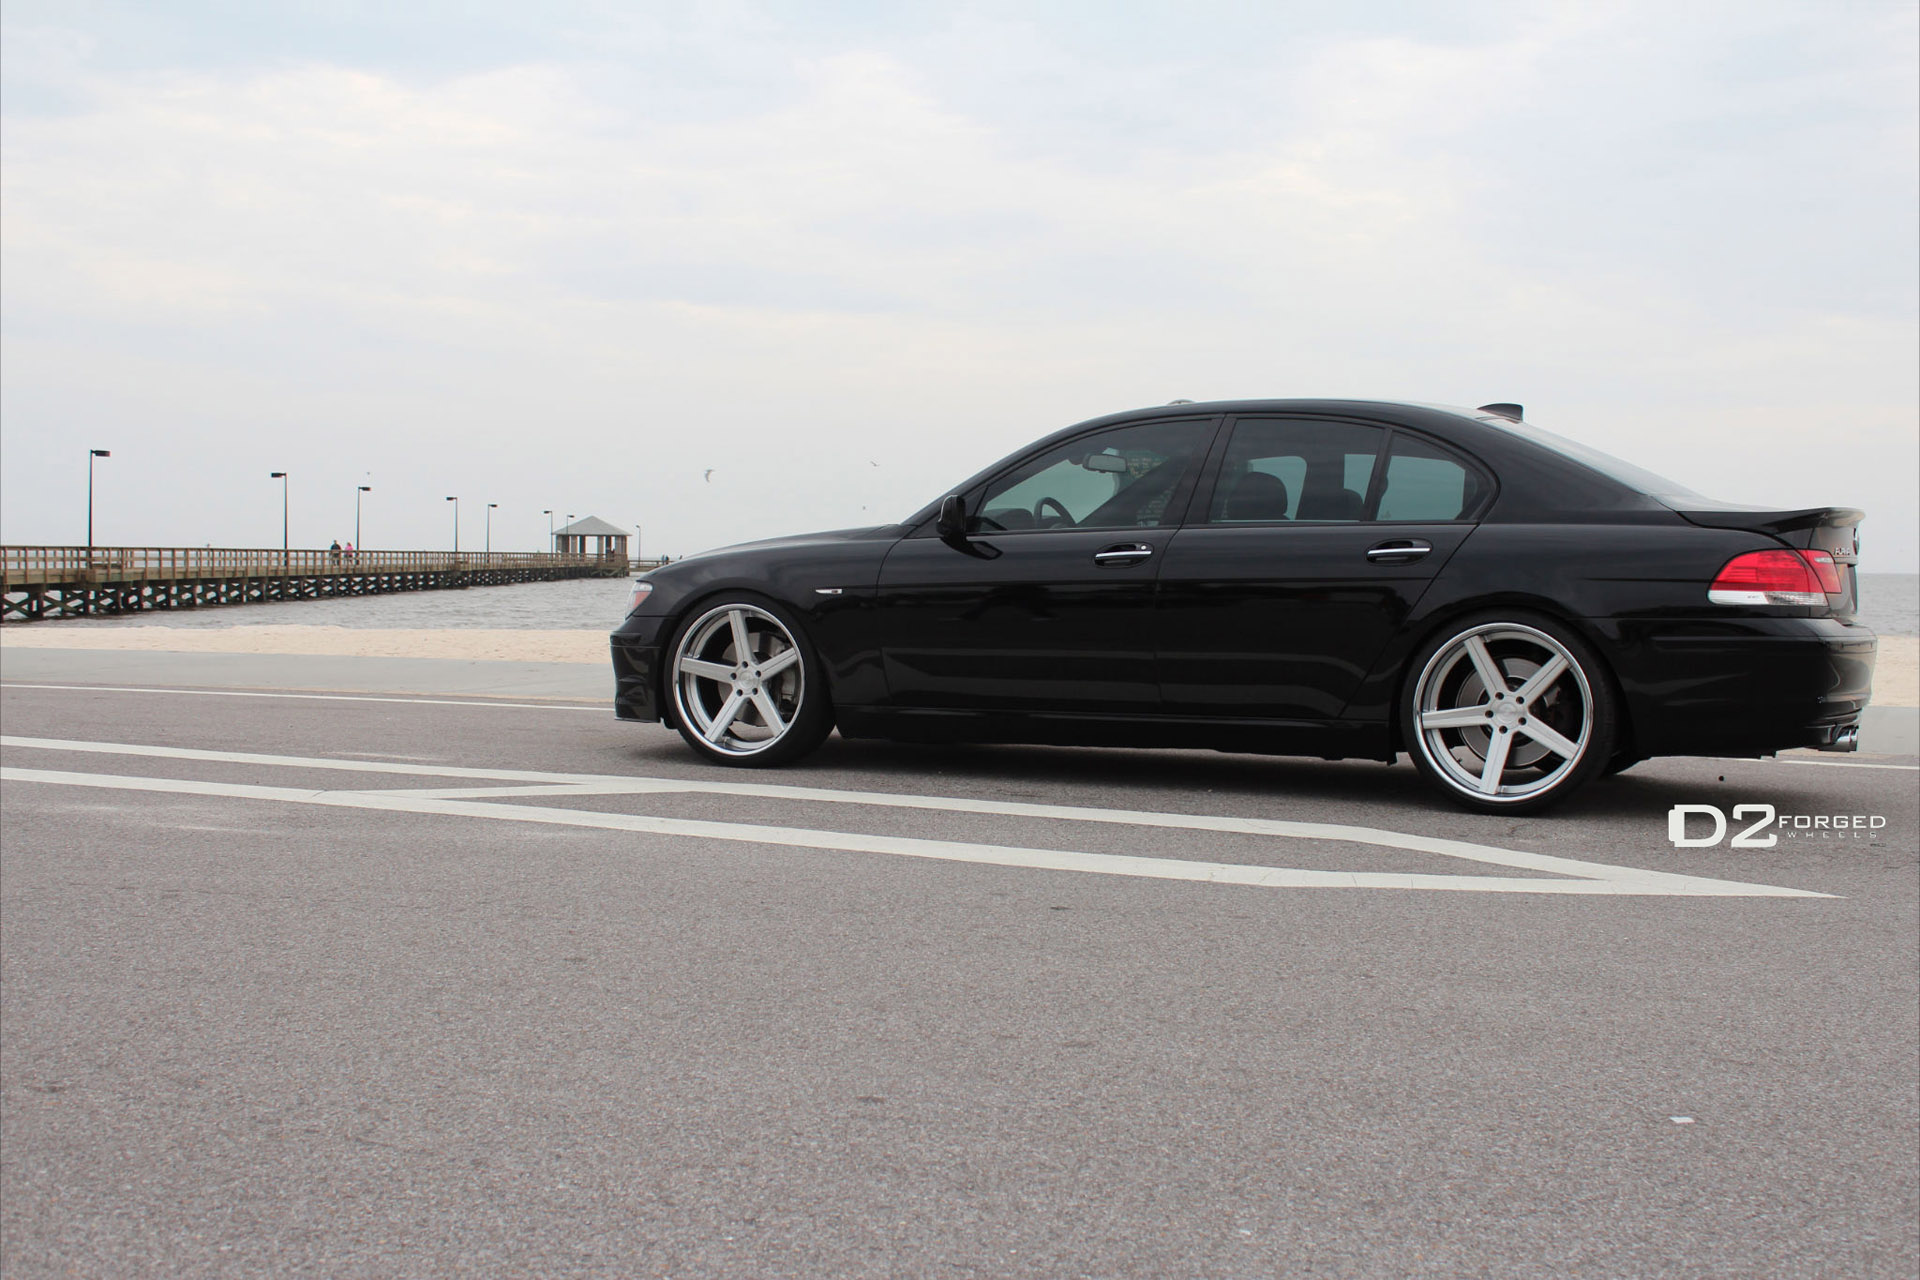 D2Forged BMW Alpina CV2 Deep Concave - Picture 73461